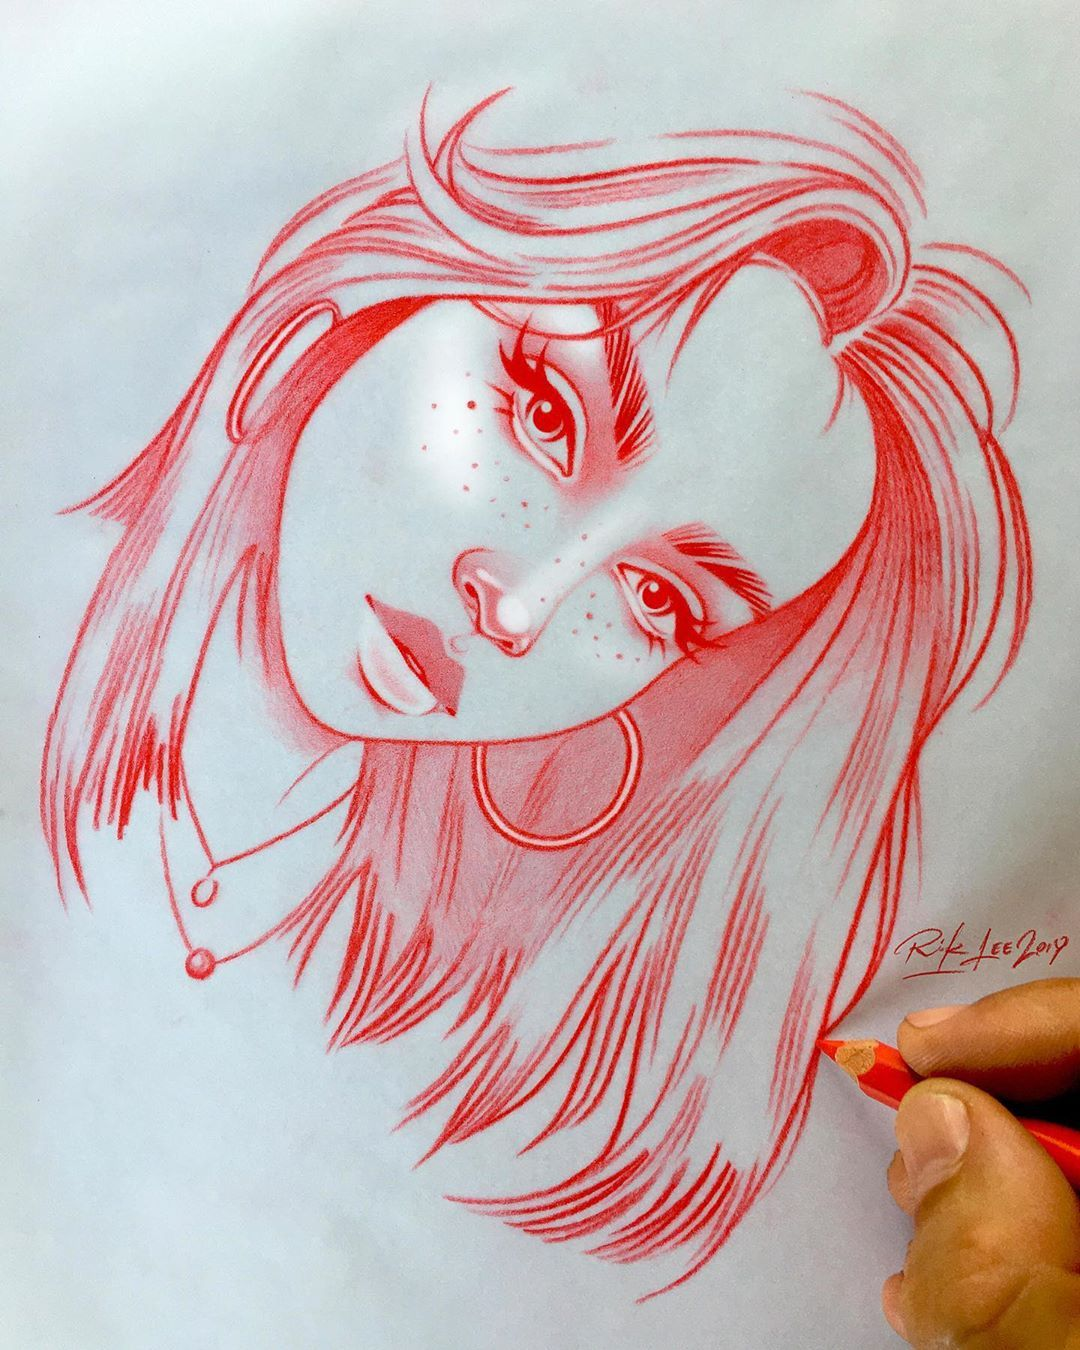 1 461 Likes 12 Comments Rik Lee Rikleeillustration On Instagram When She Looks At You That Way And Cool Art Drawings Art Drawings Sketches Art Sketches